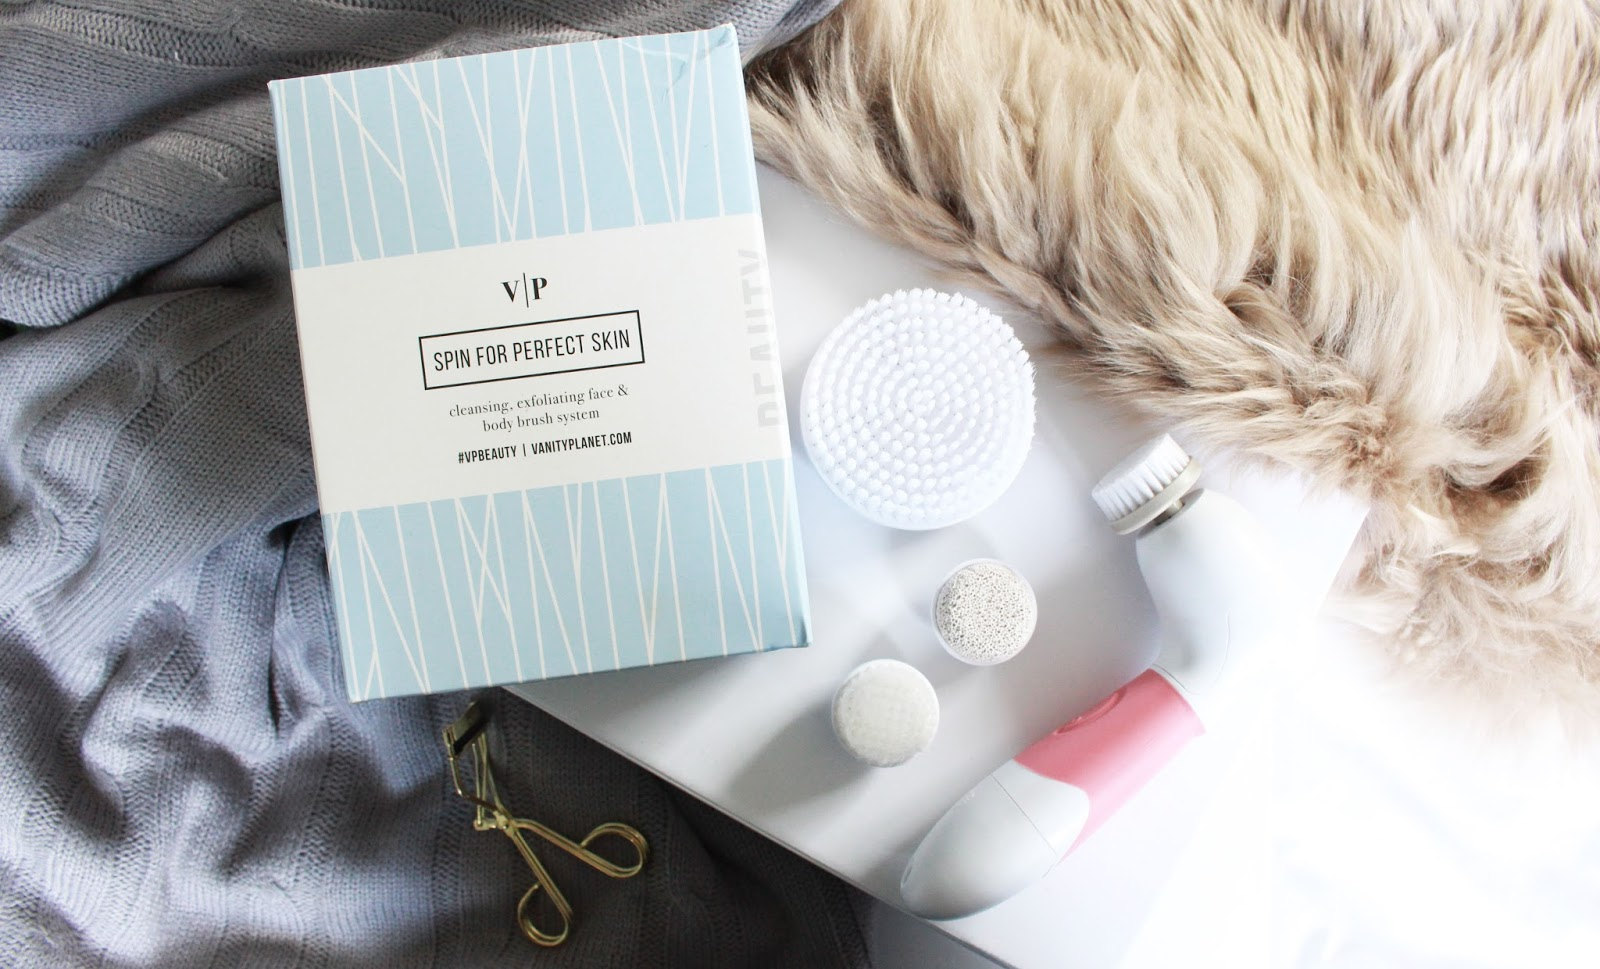 vanity planet uk, vanity planet, vanity planet bloggers, face brush, face brush review, vanity planet brush review